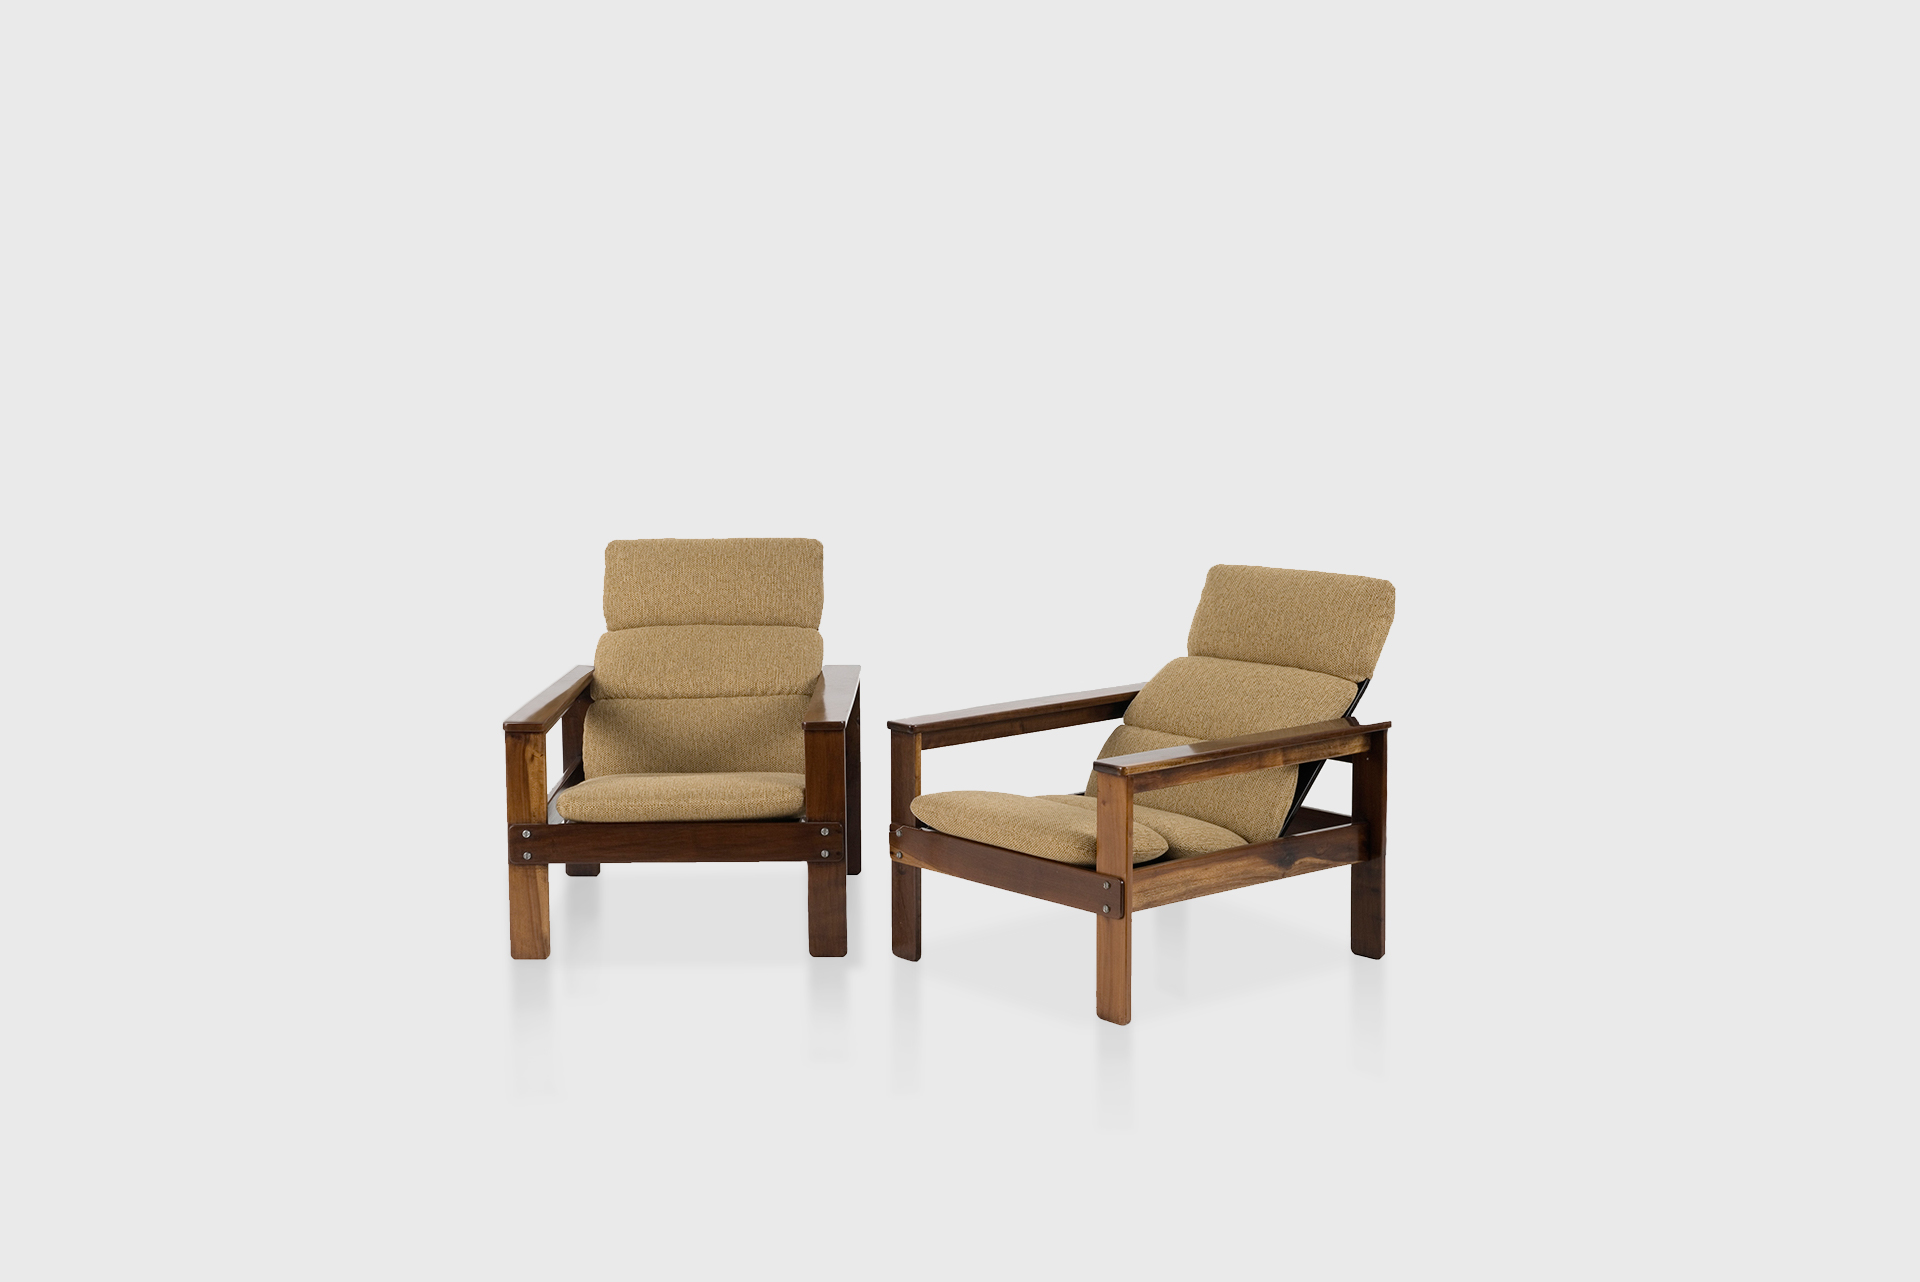 Pair of armchairs Manufactured by Hobjeto Brazil, 1970s Wood, fabric upholstery